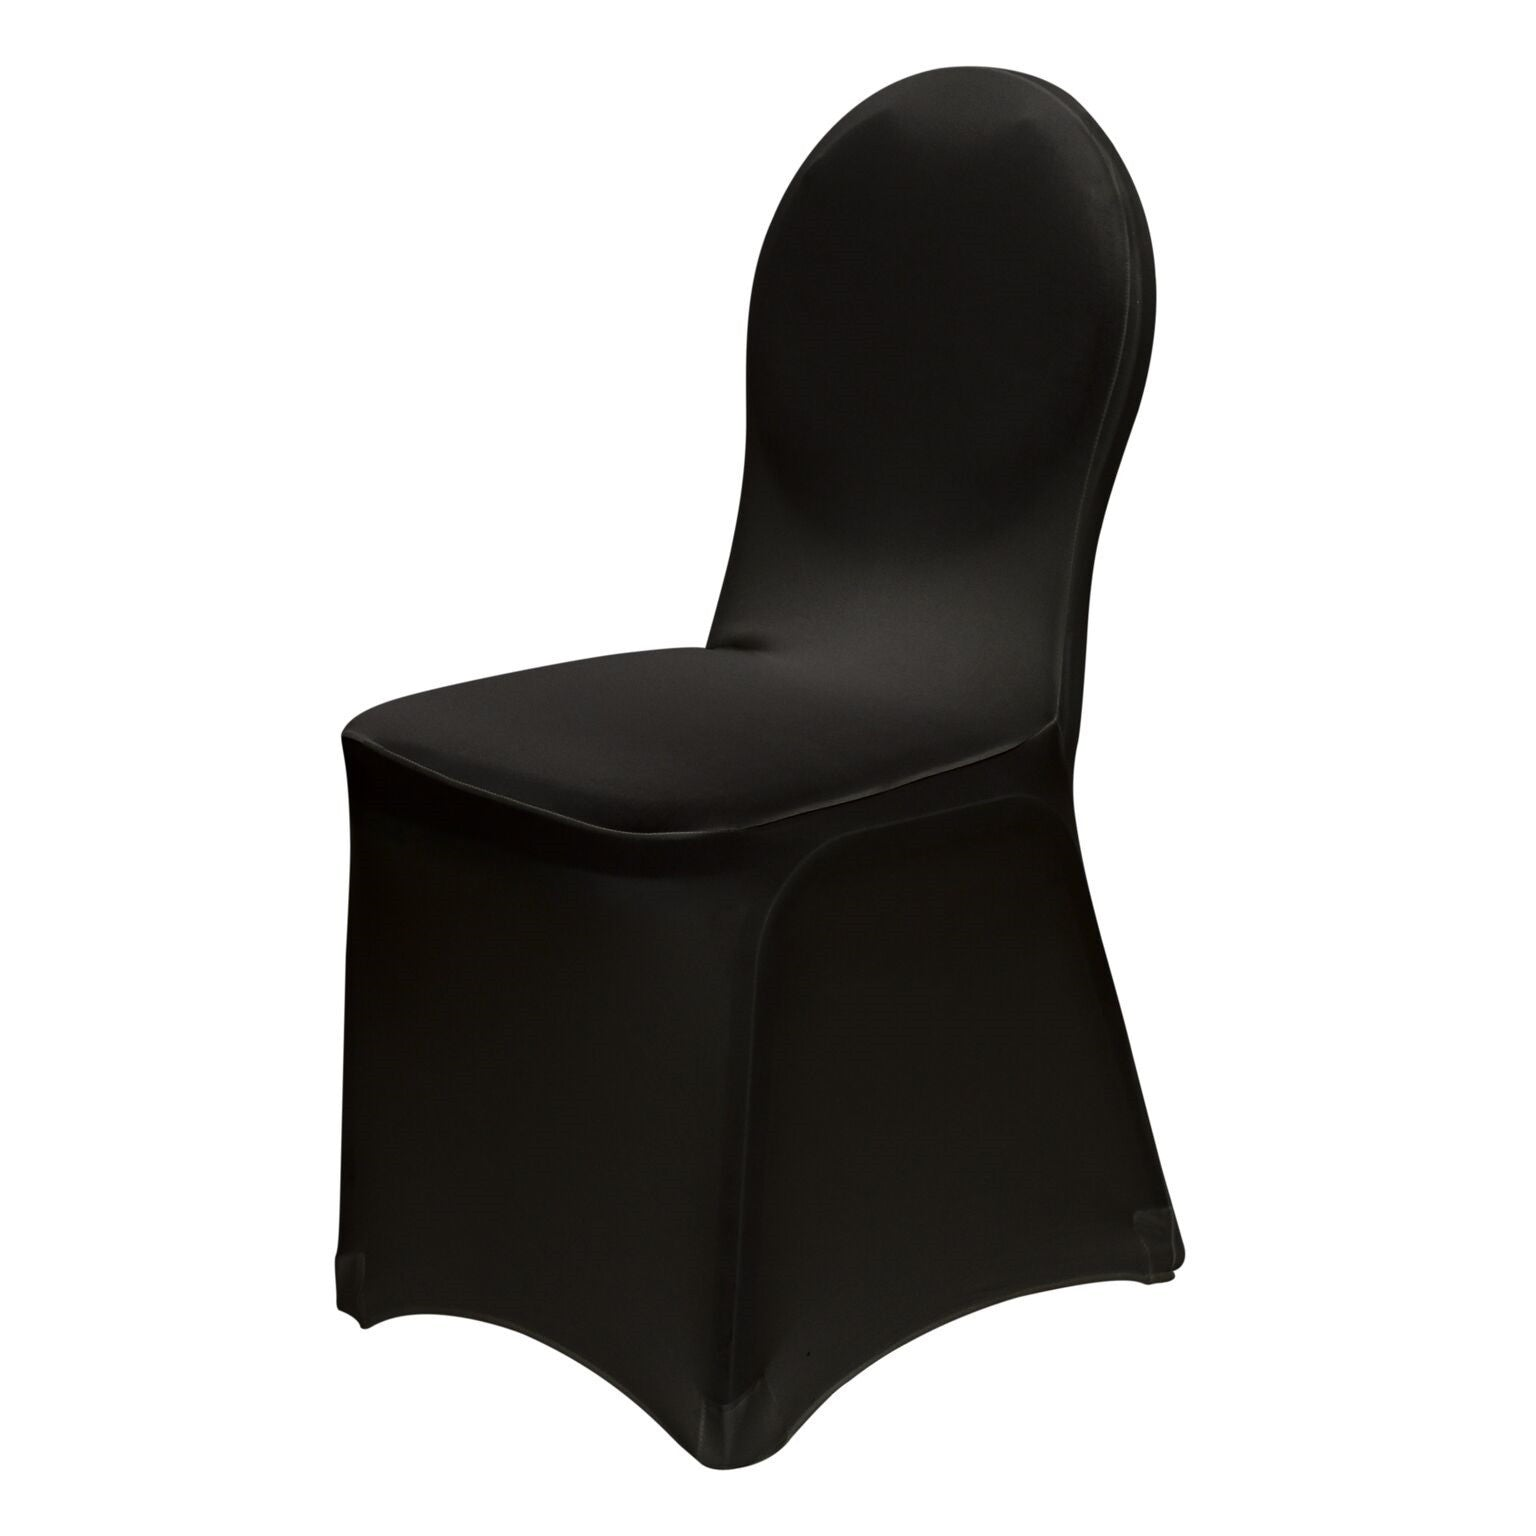 tx product stack party banquet chair rentals seating event chairs hotel houston maroon